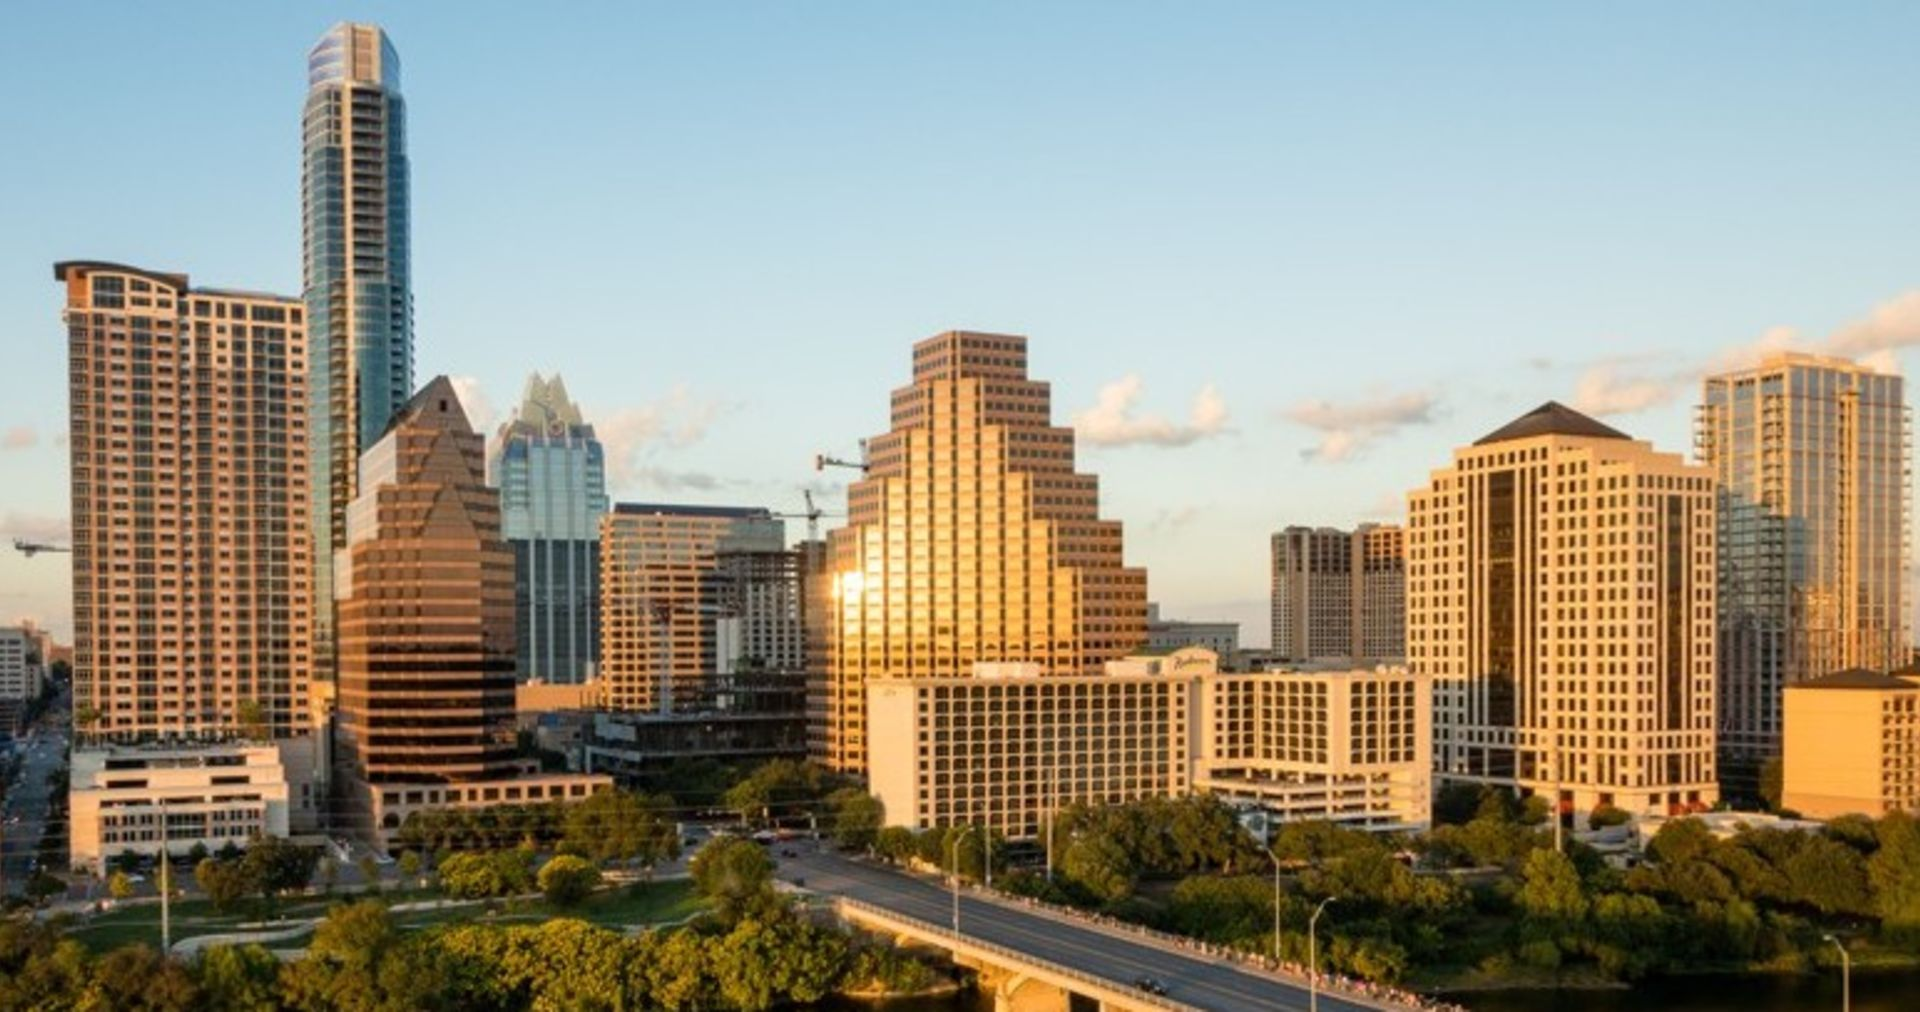 U.S. News and World Report has named Austin, Texas, the best place to live in America